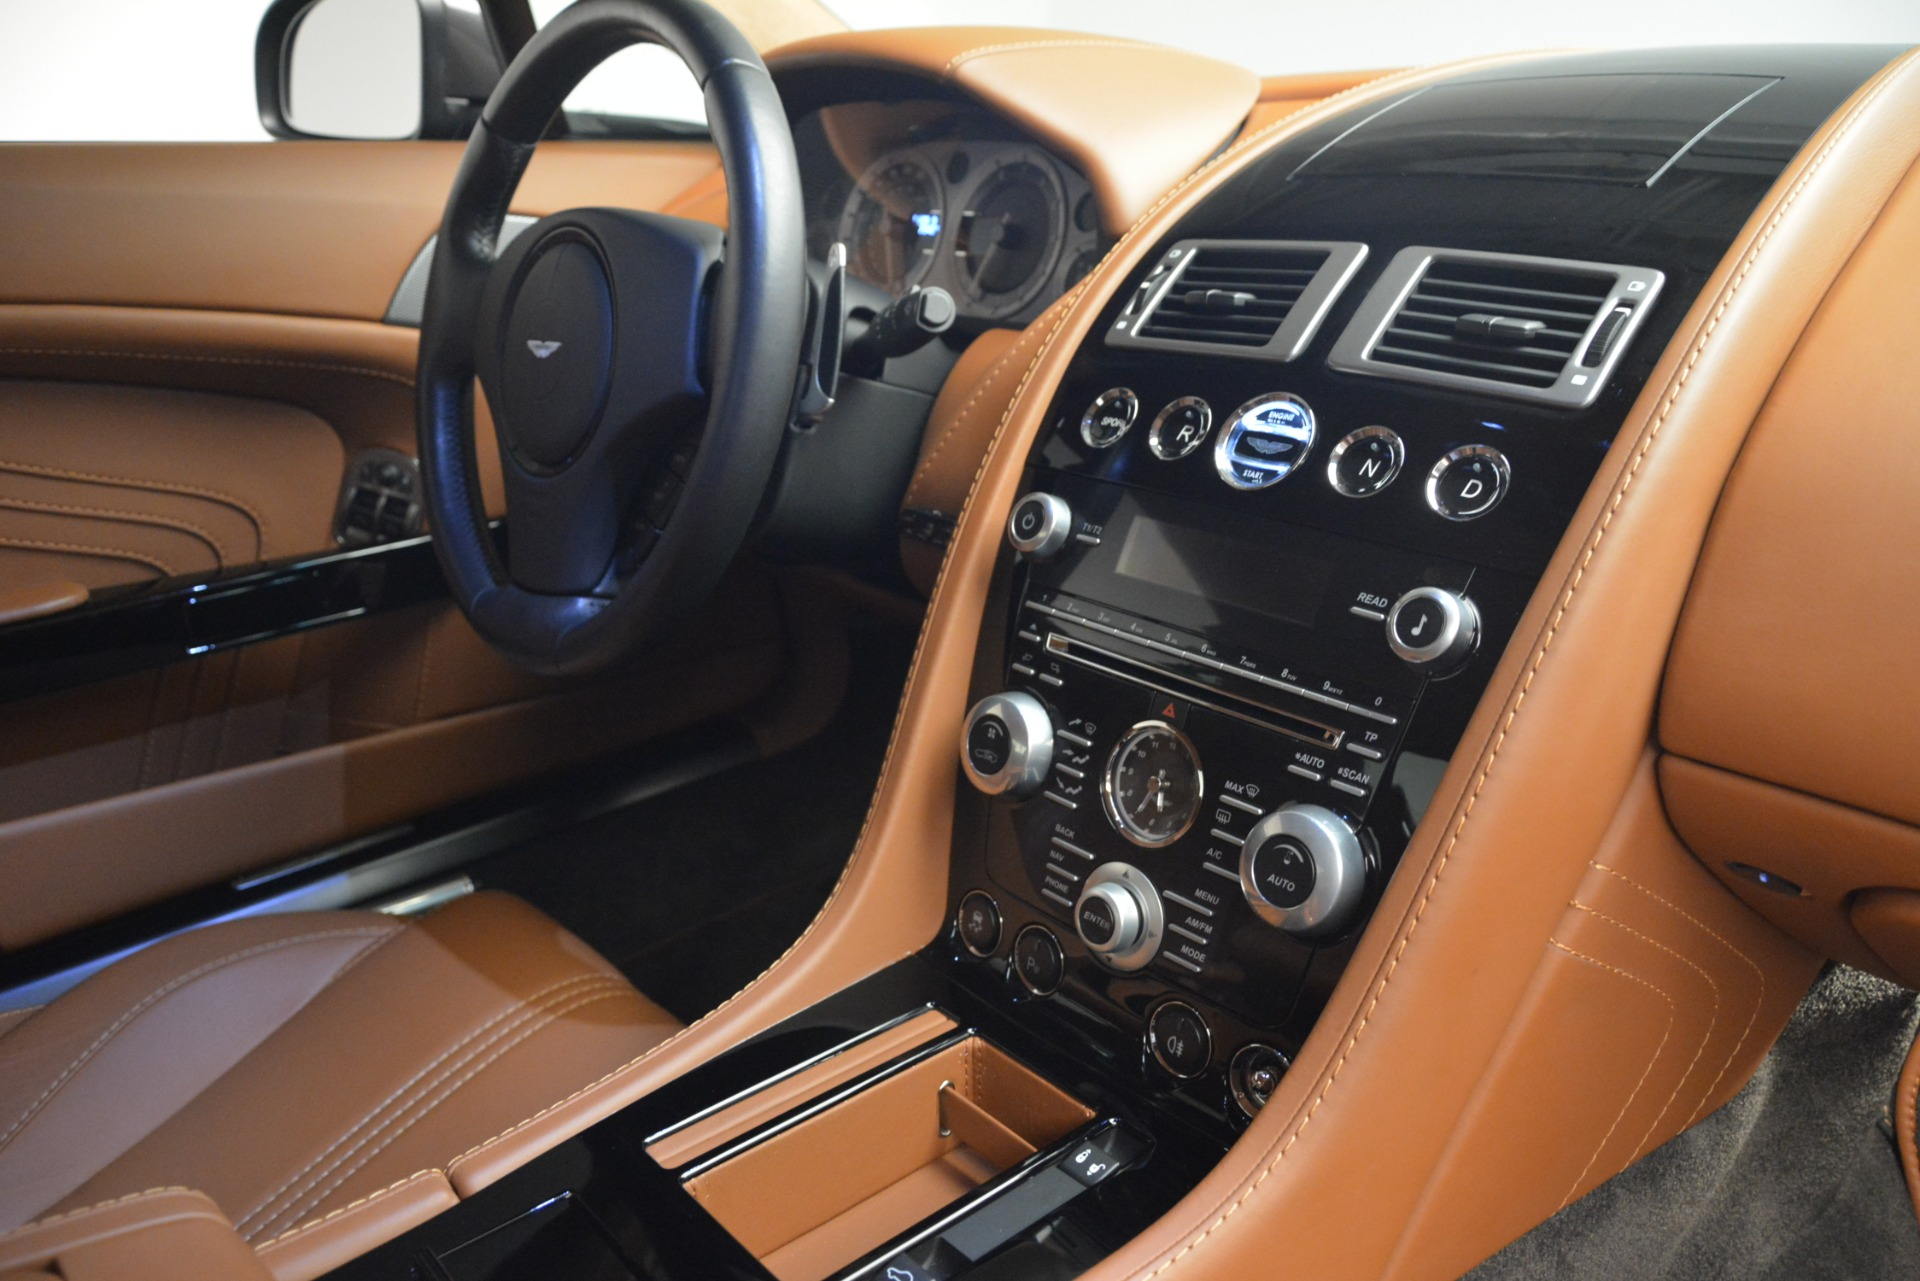 Used 2012 Aston Martin V8 Vantage S Coupe For Sale In Westport, CT 2951_p17